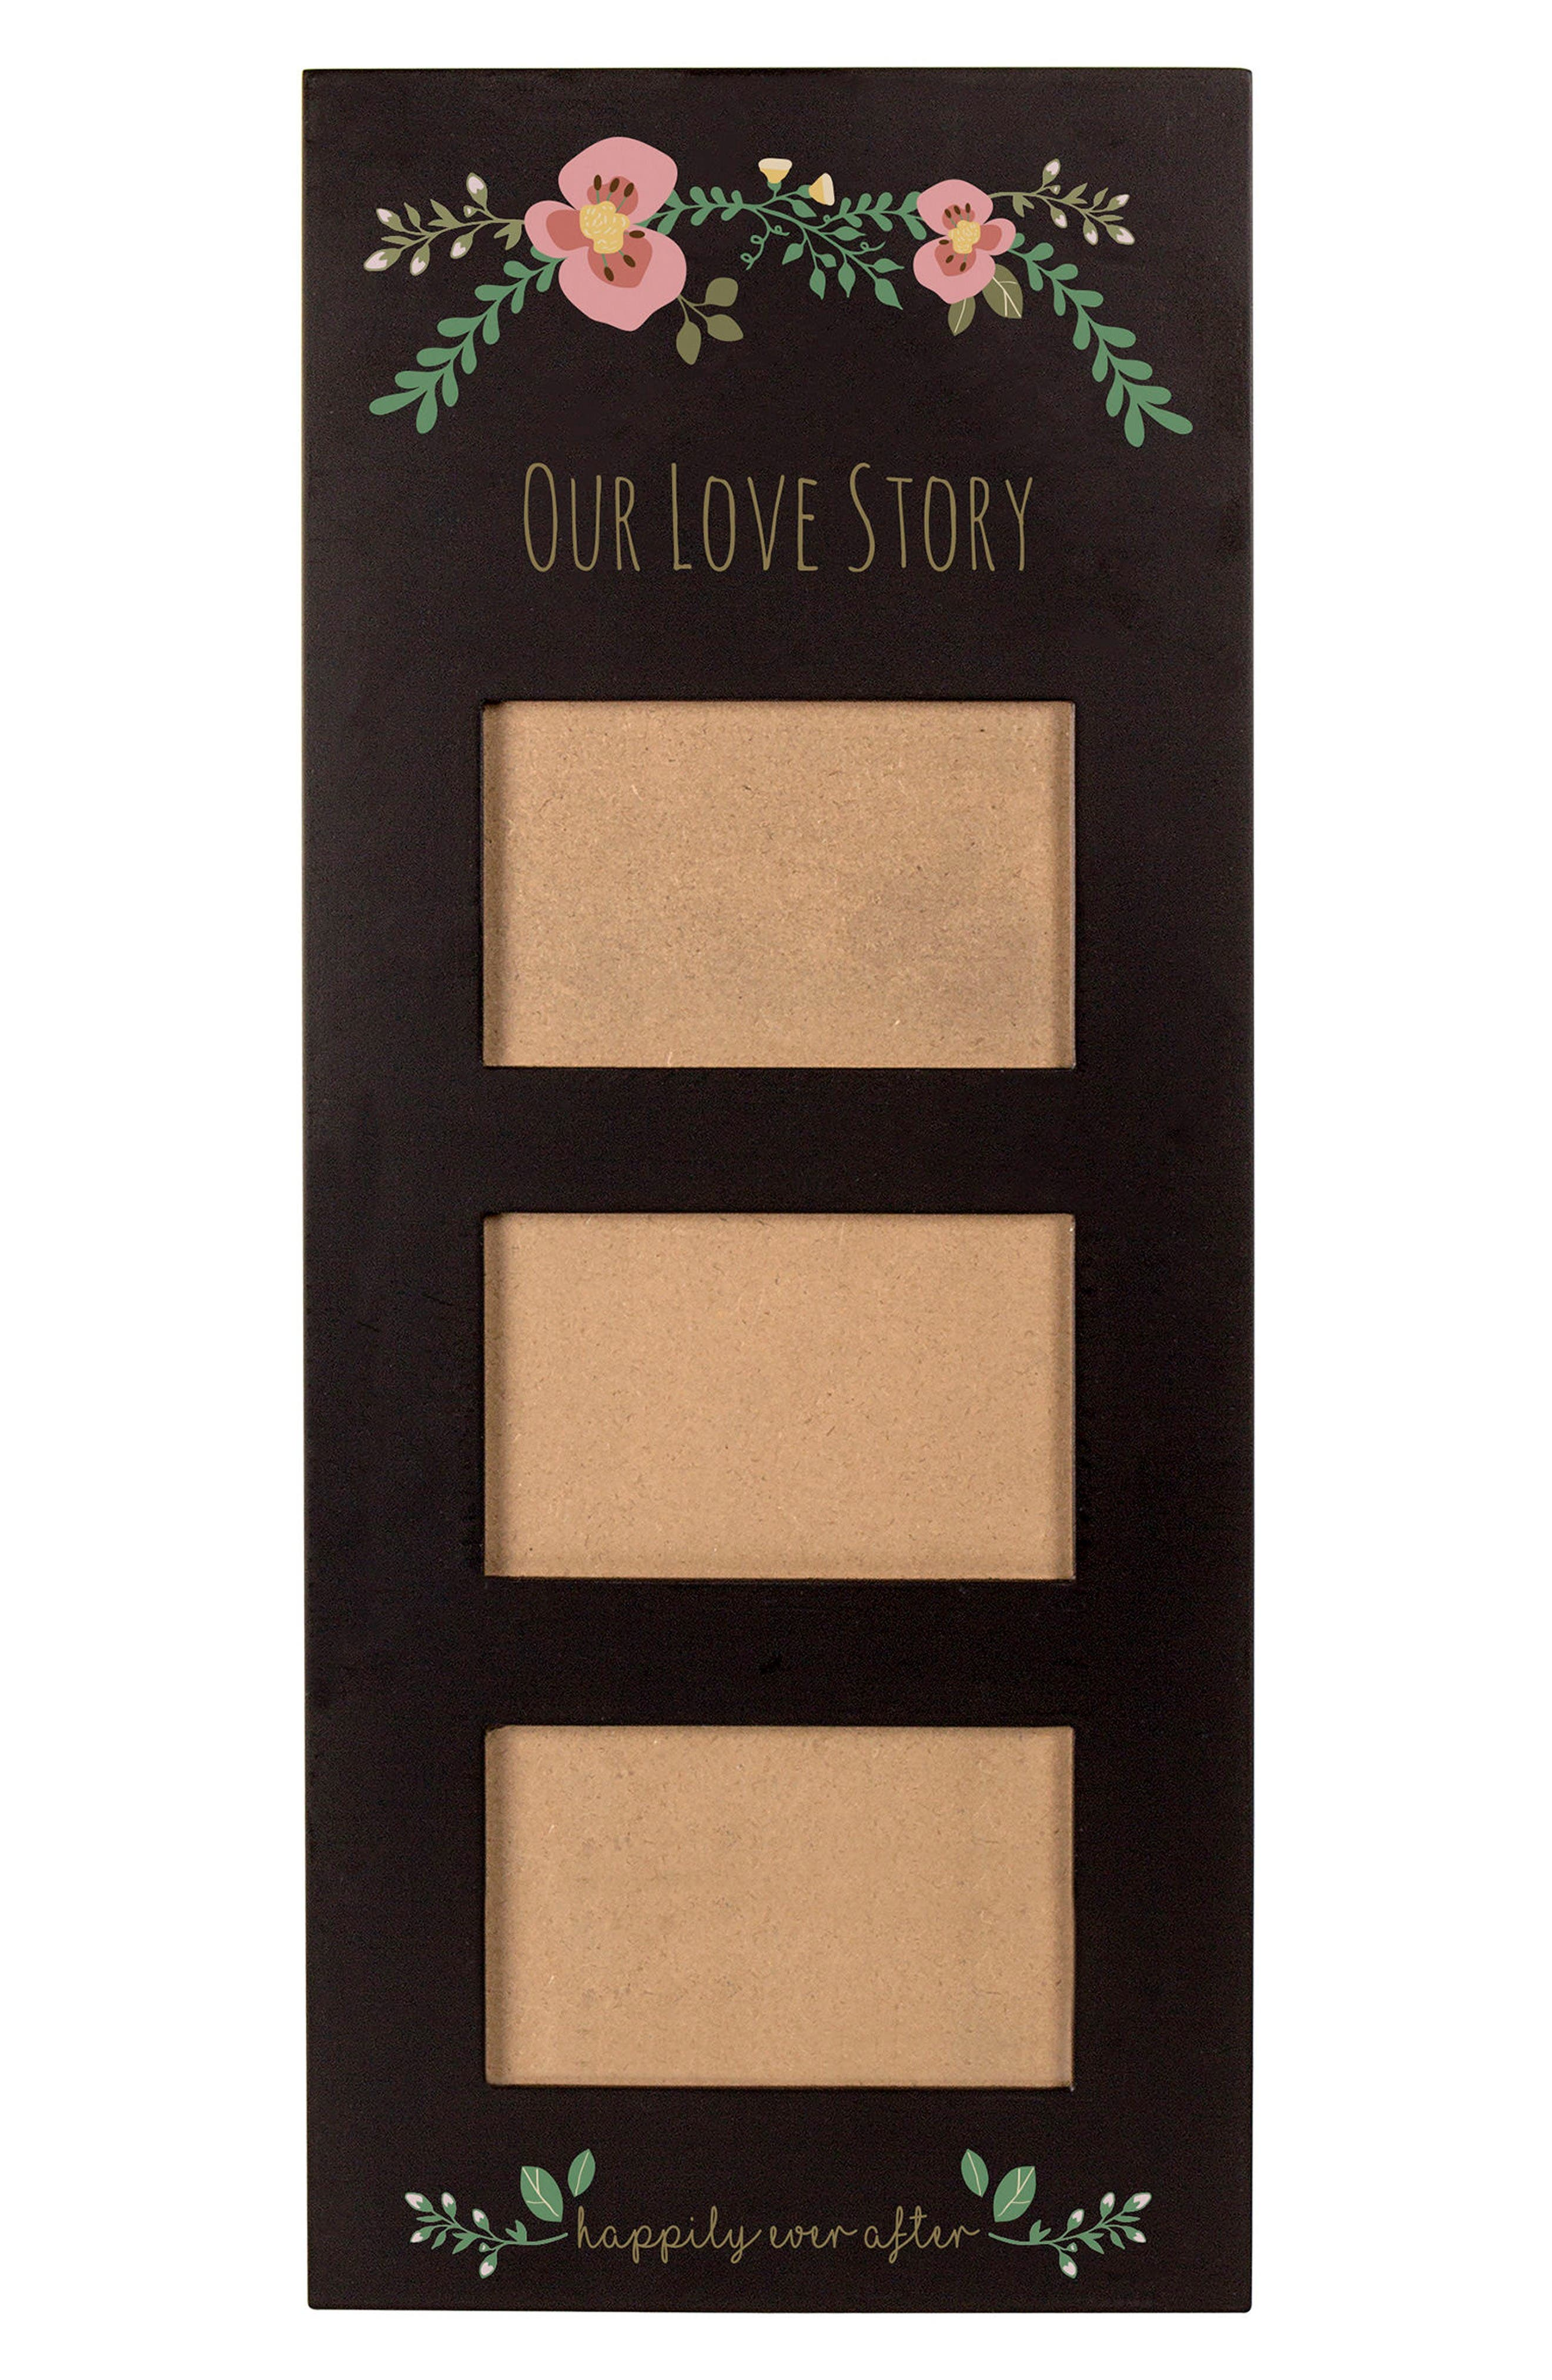 Floral Love Story 3-Window Picture Frame,                             Alternate thumbnail 4, color,                             Black